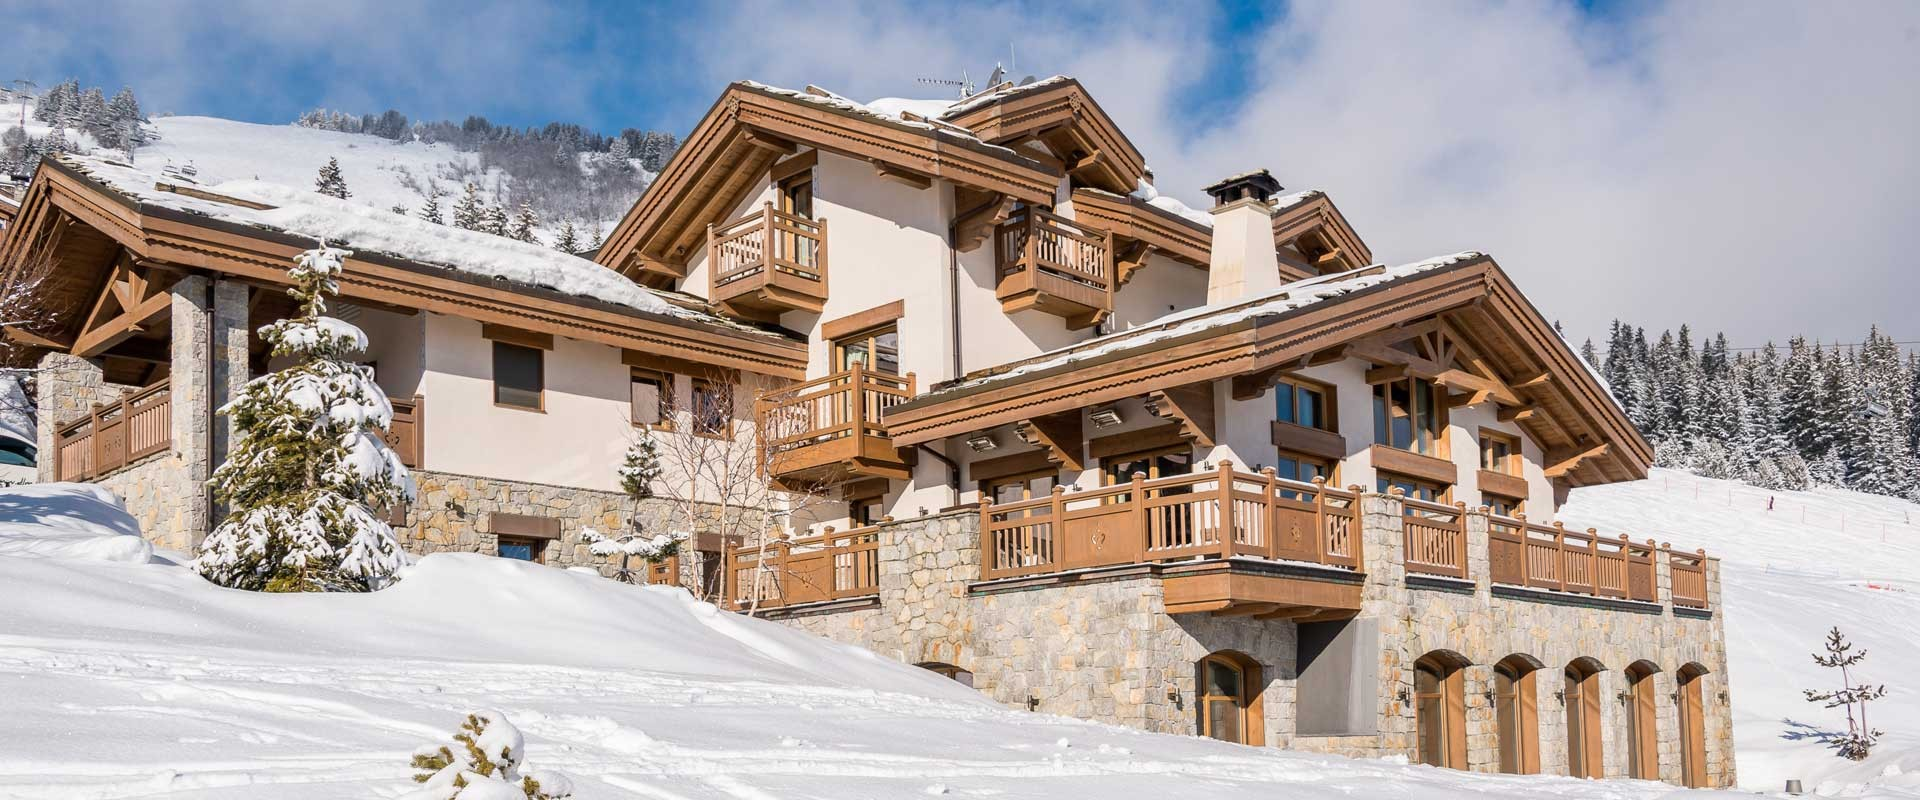 Shemshak Lodge, Le Plantrey - Courchevel 1850